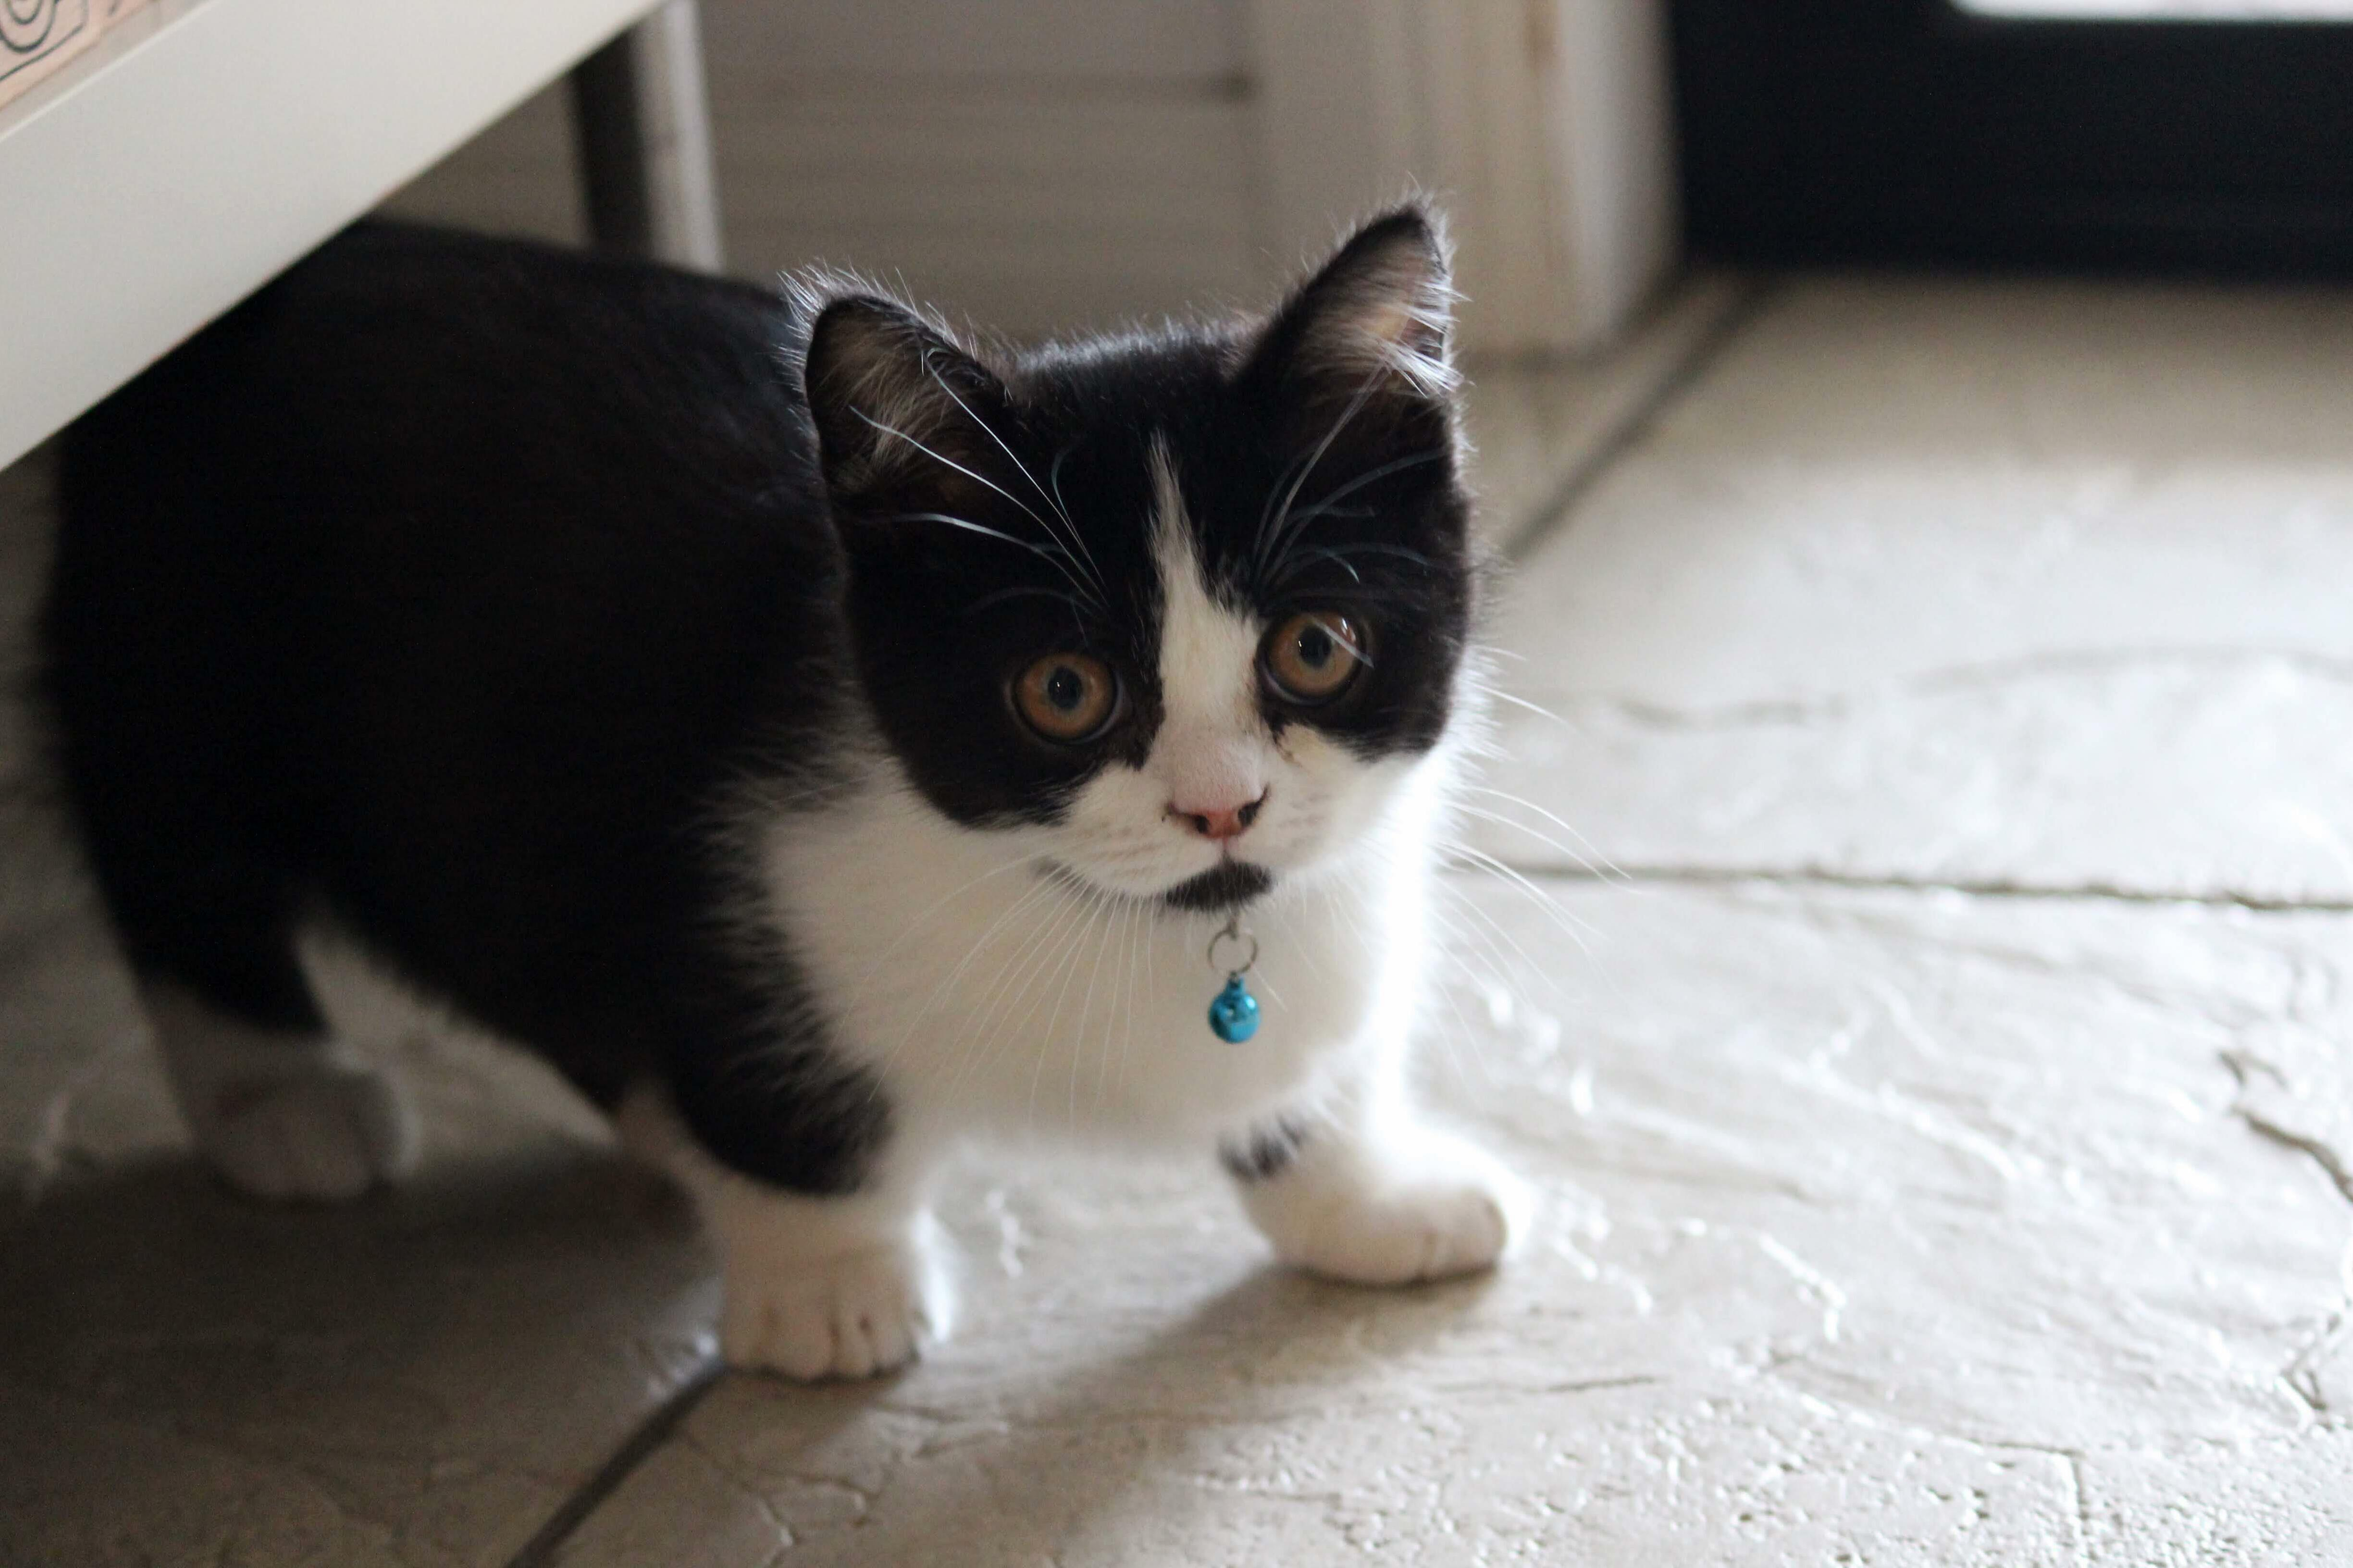 Mighty munchkin, mini kitty. meet bruce; funny, cute and stumpy!